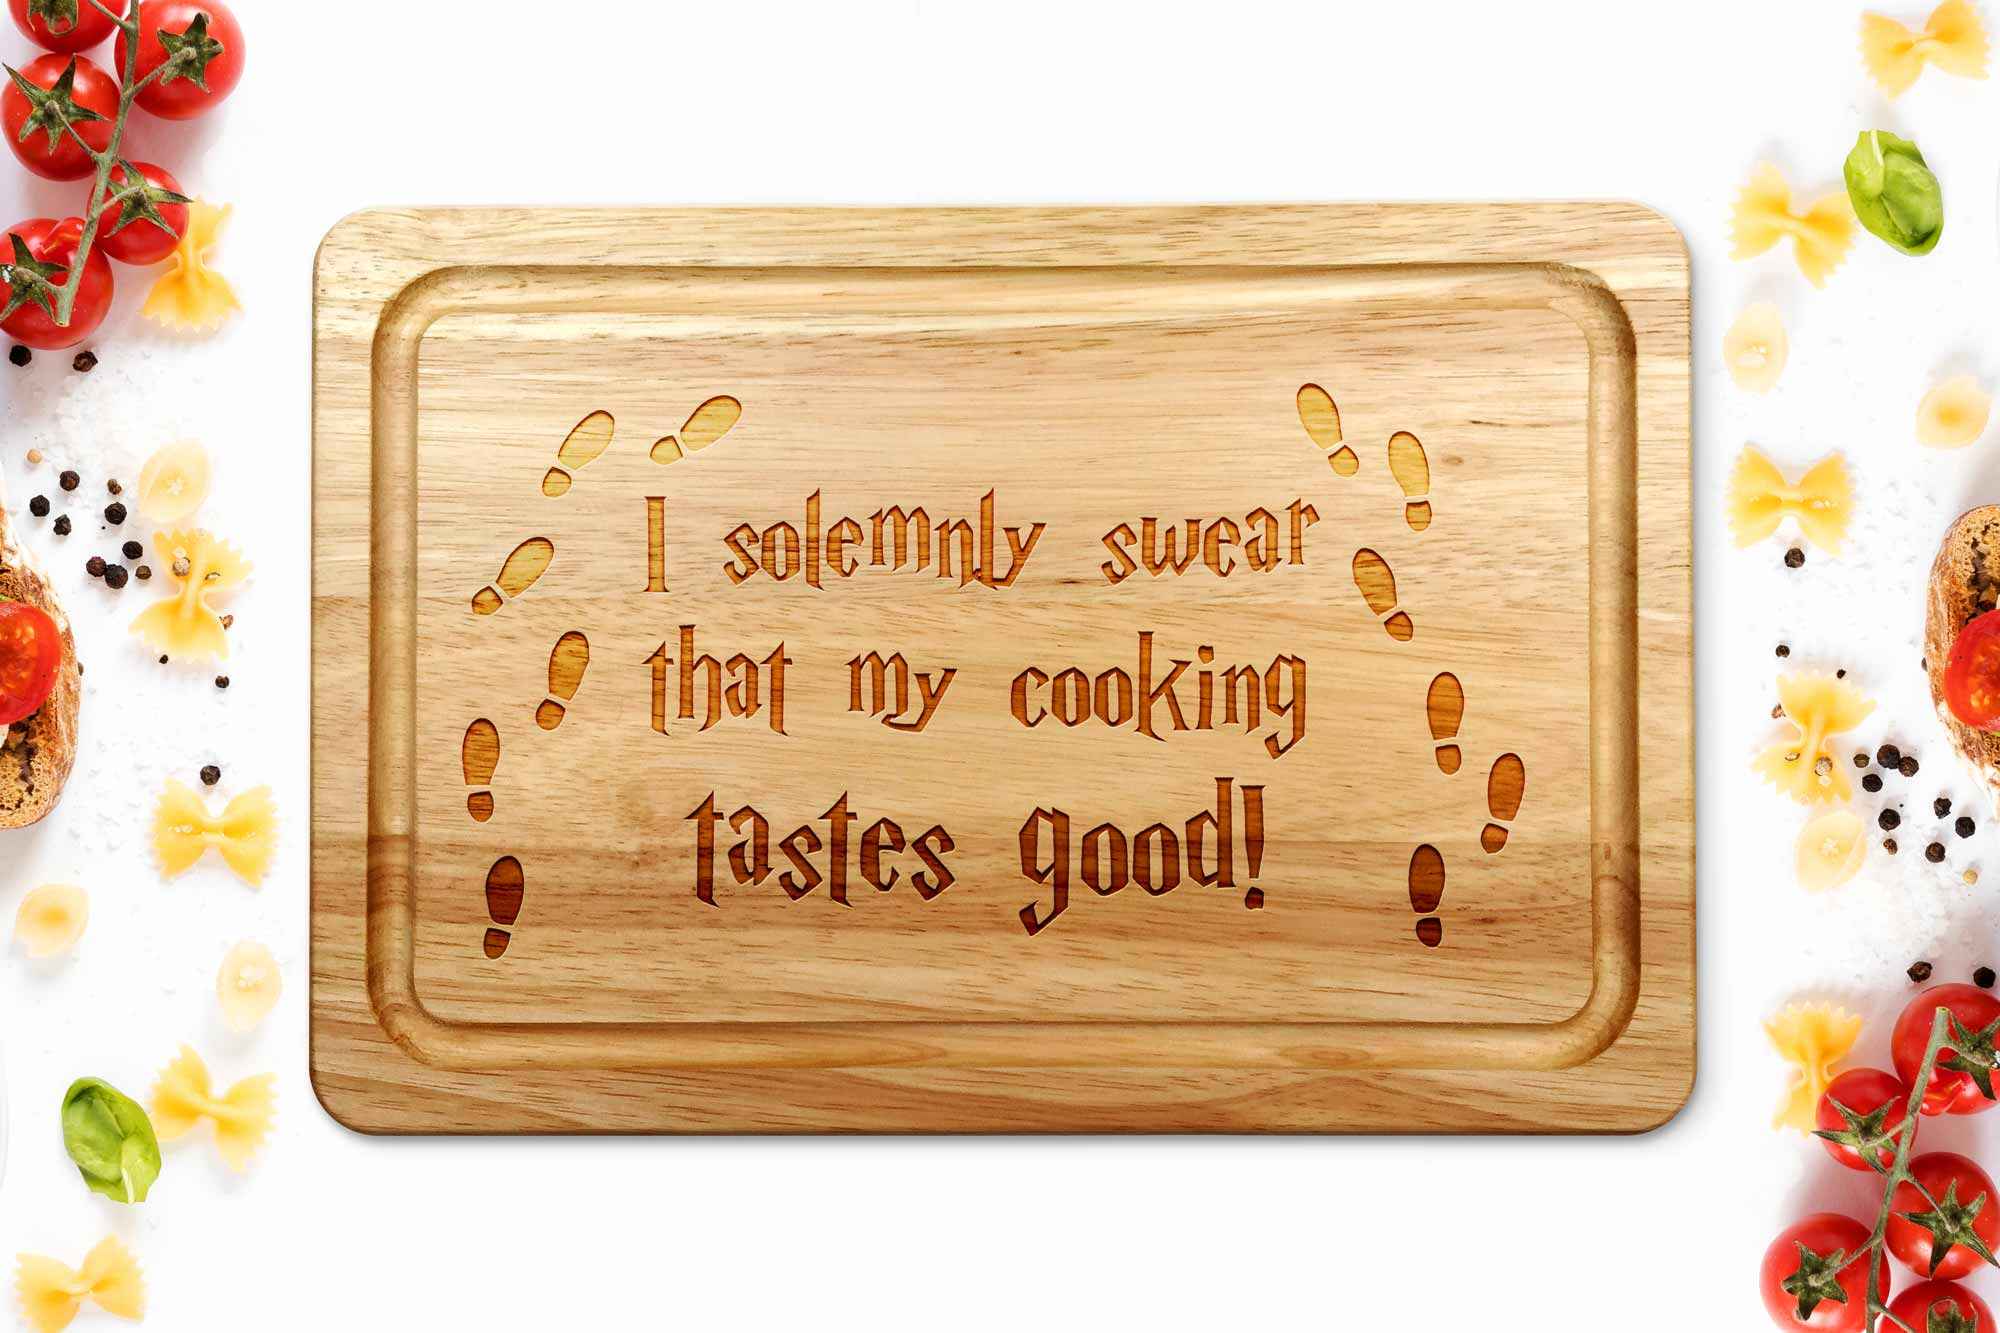 Harry Potter style chopping board on a white background